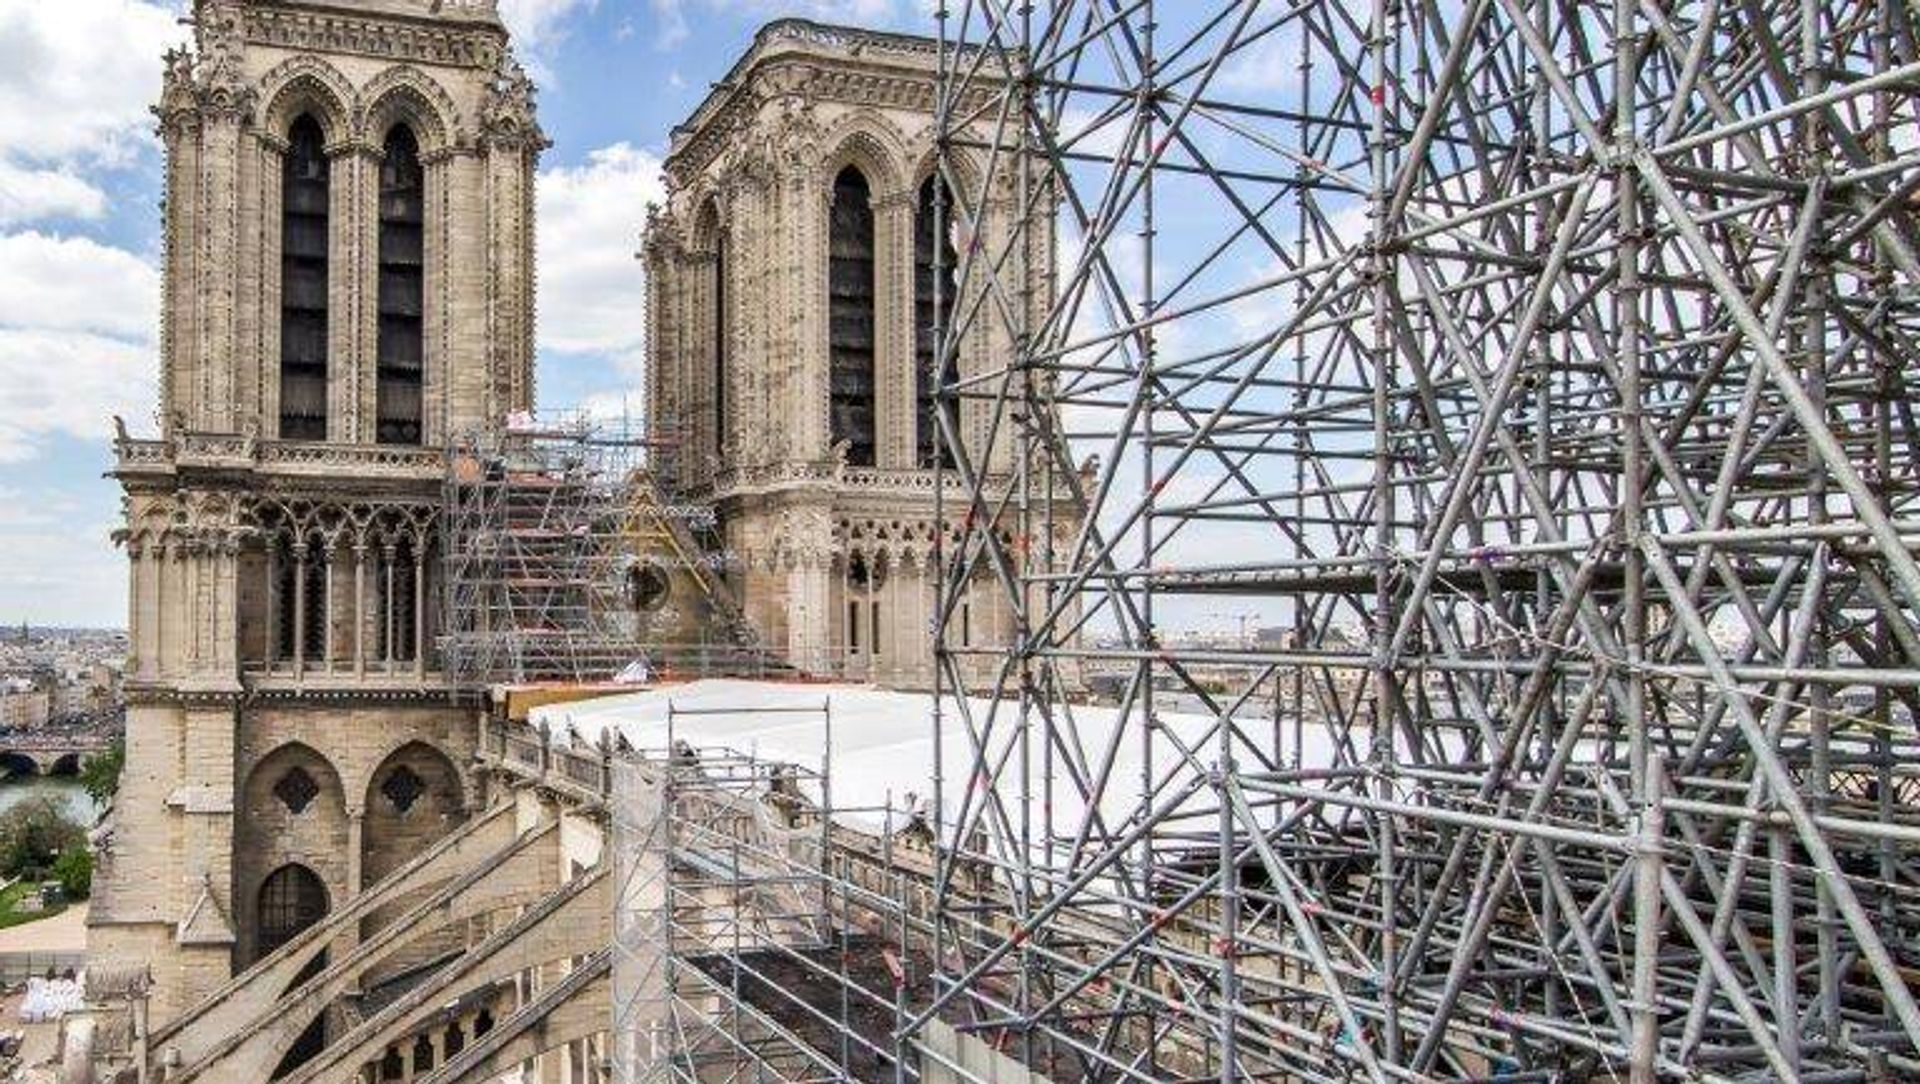 The scaffolding around the Notre Dame cathedral in Paris was erected before the fire in order to carry out restoration work Photo: Edouard Bierry / Ministère de la Culture